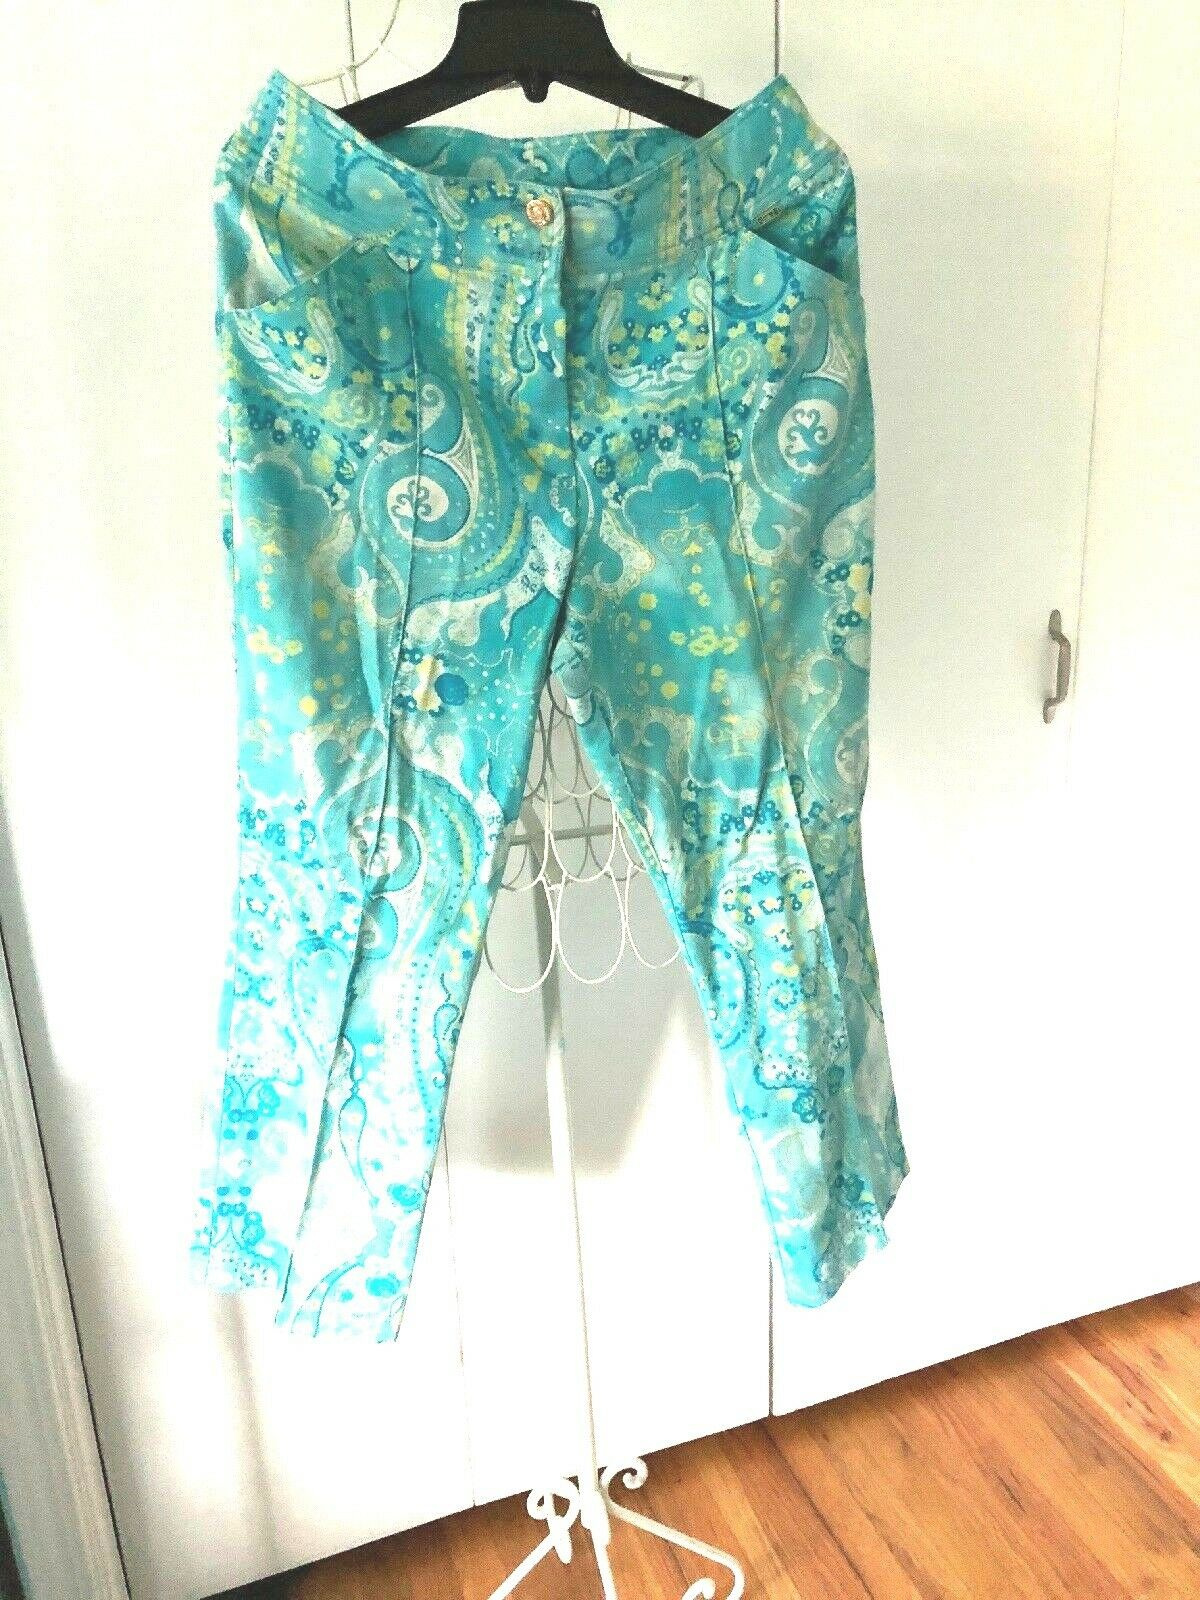 St. John Sport bluee Green, White, Yellow Paisley Print Pants, Size 12